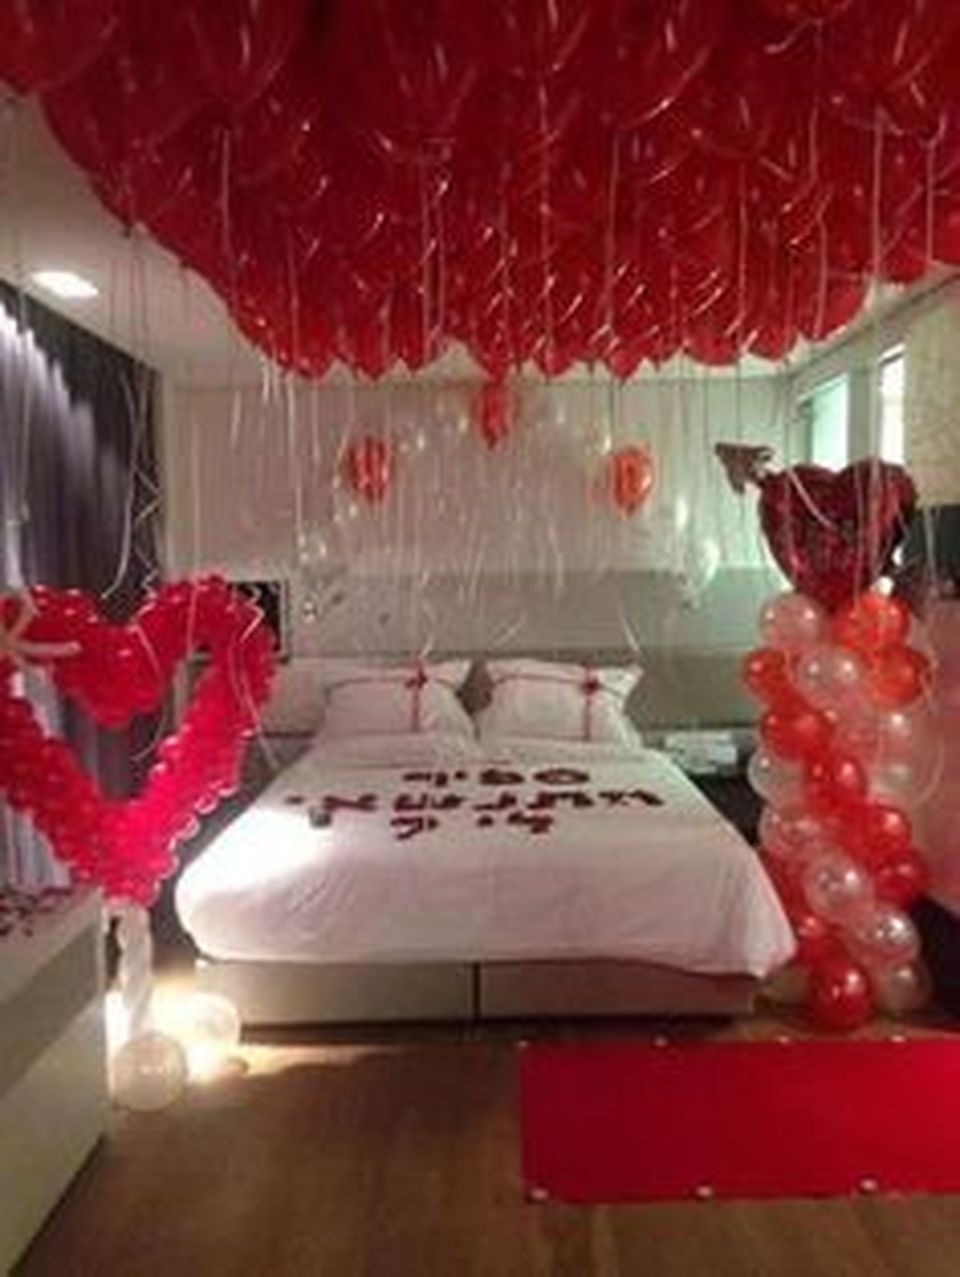 15 Lovely Romantic Bedroom Decorations Ideas for Couples